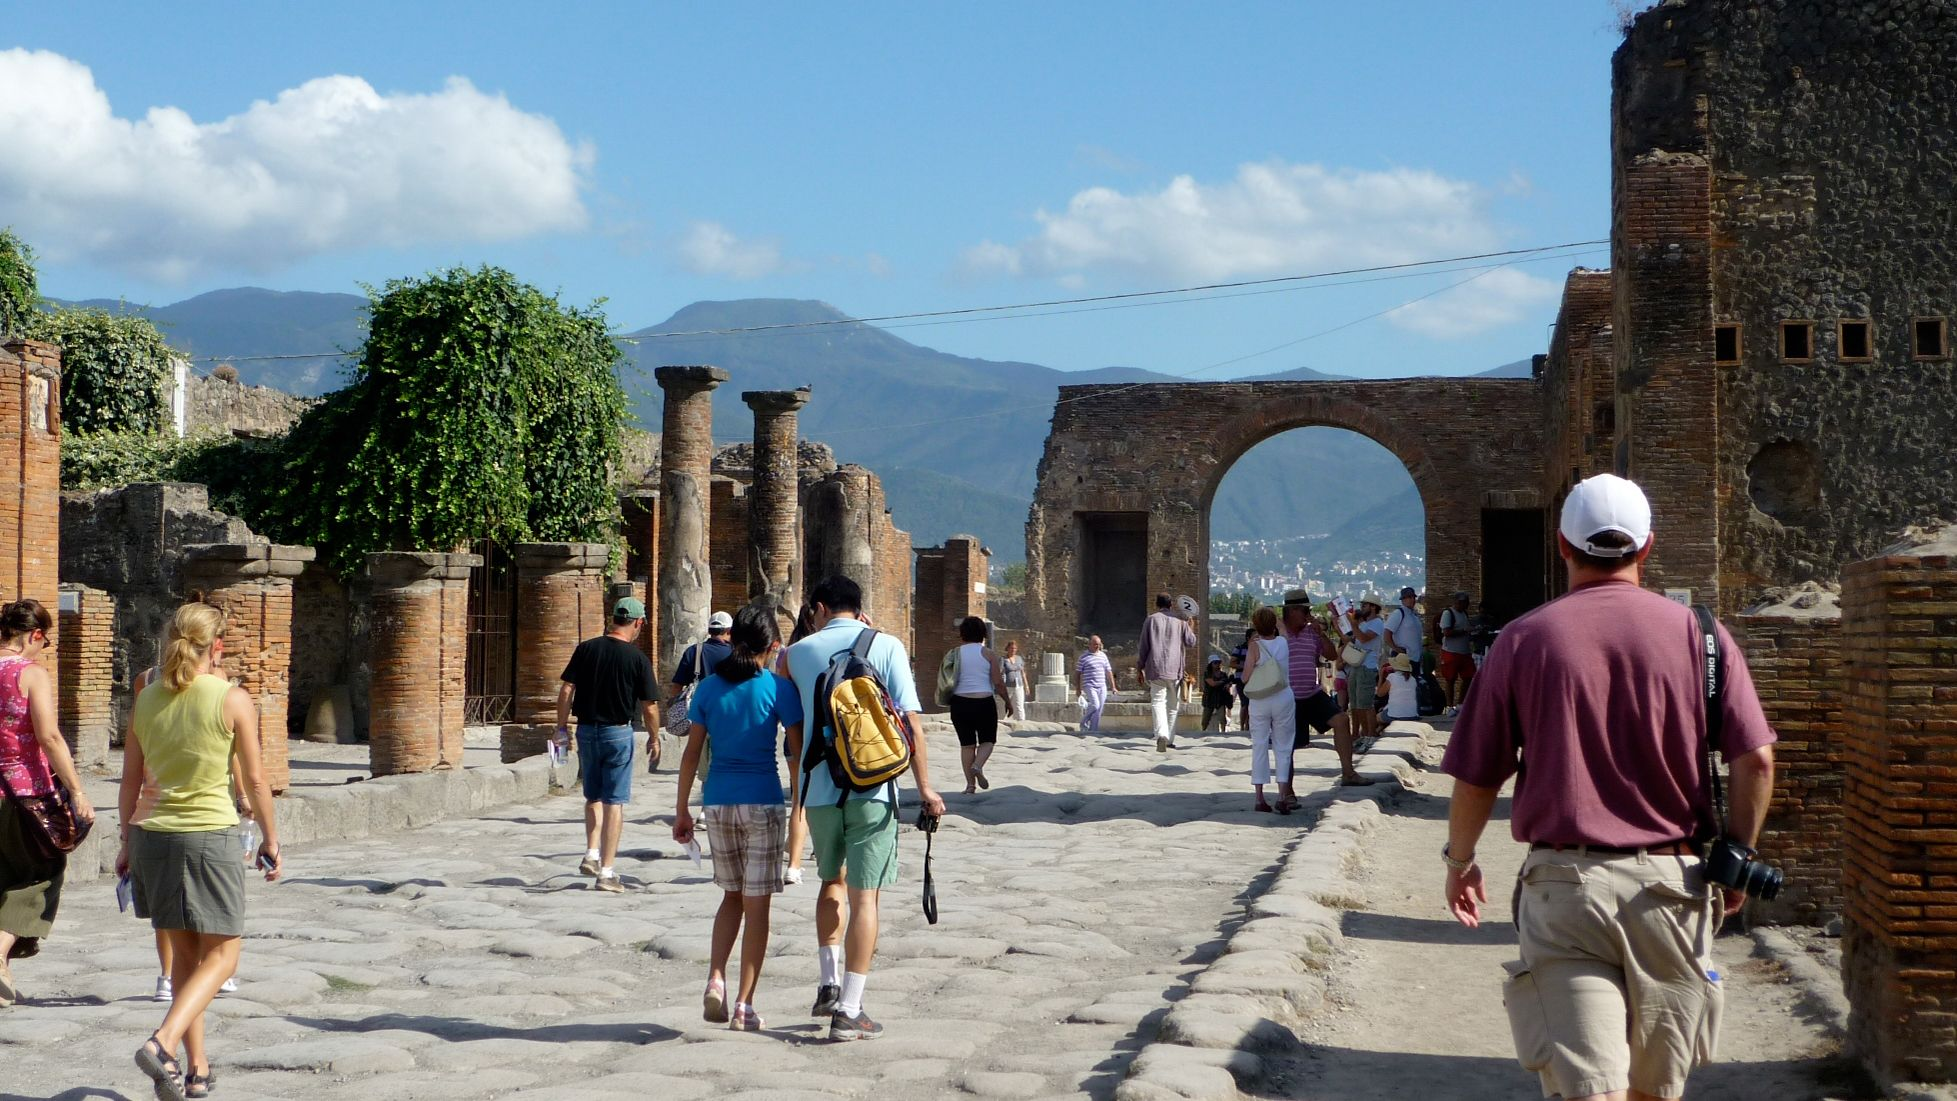 Several tourists walking about in Pompeii preservation site.